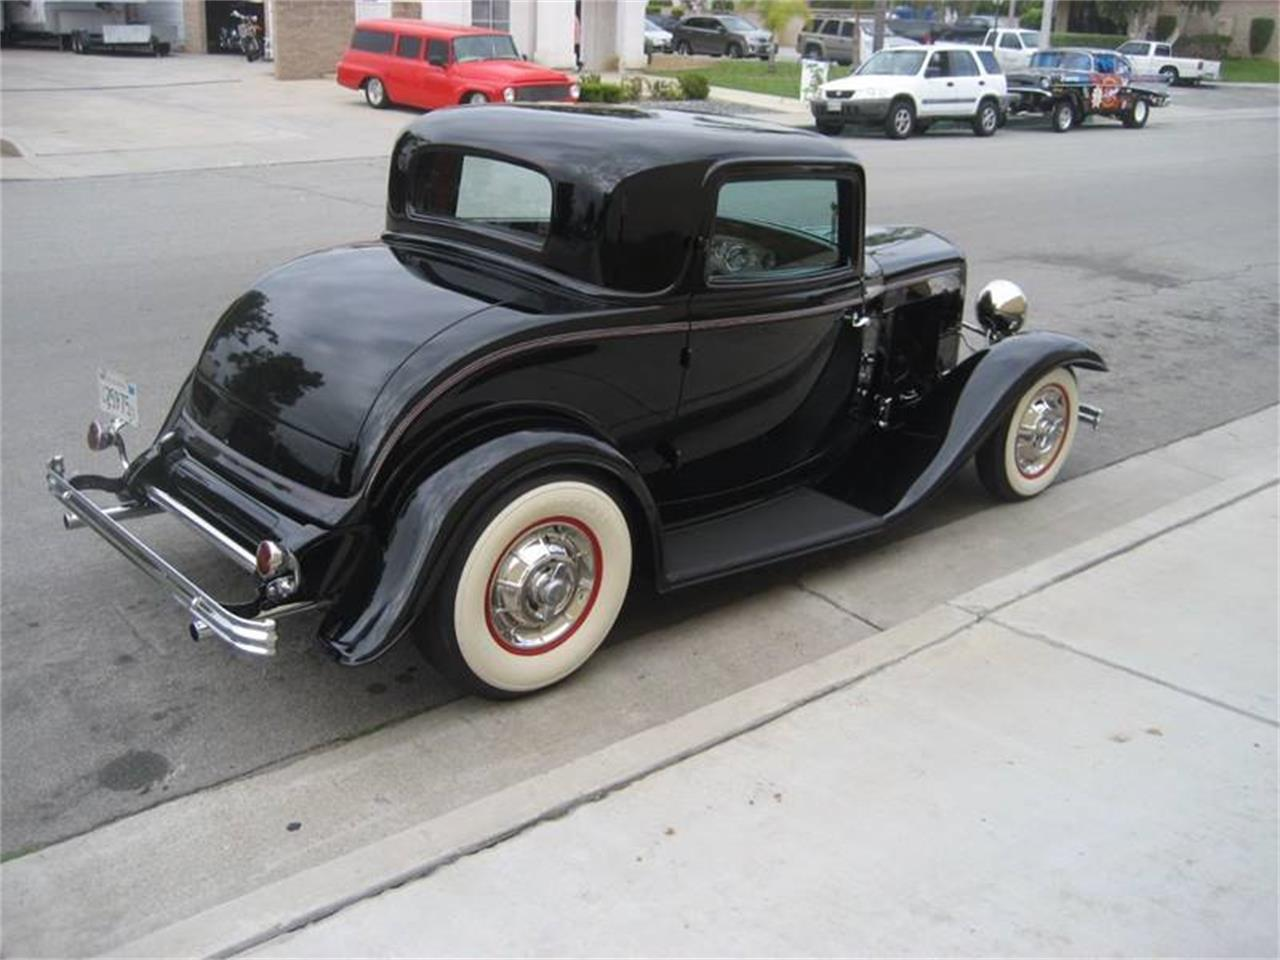 Large Picture of Classic 1932 Ford 3-Window Coupe located in Brea California Auction Vehicle - LOR6